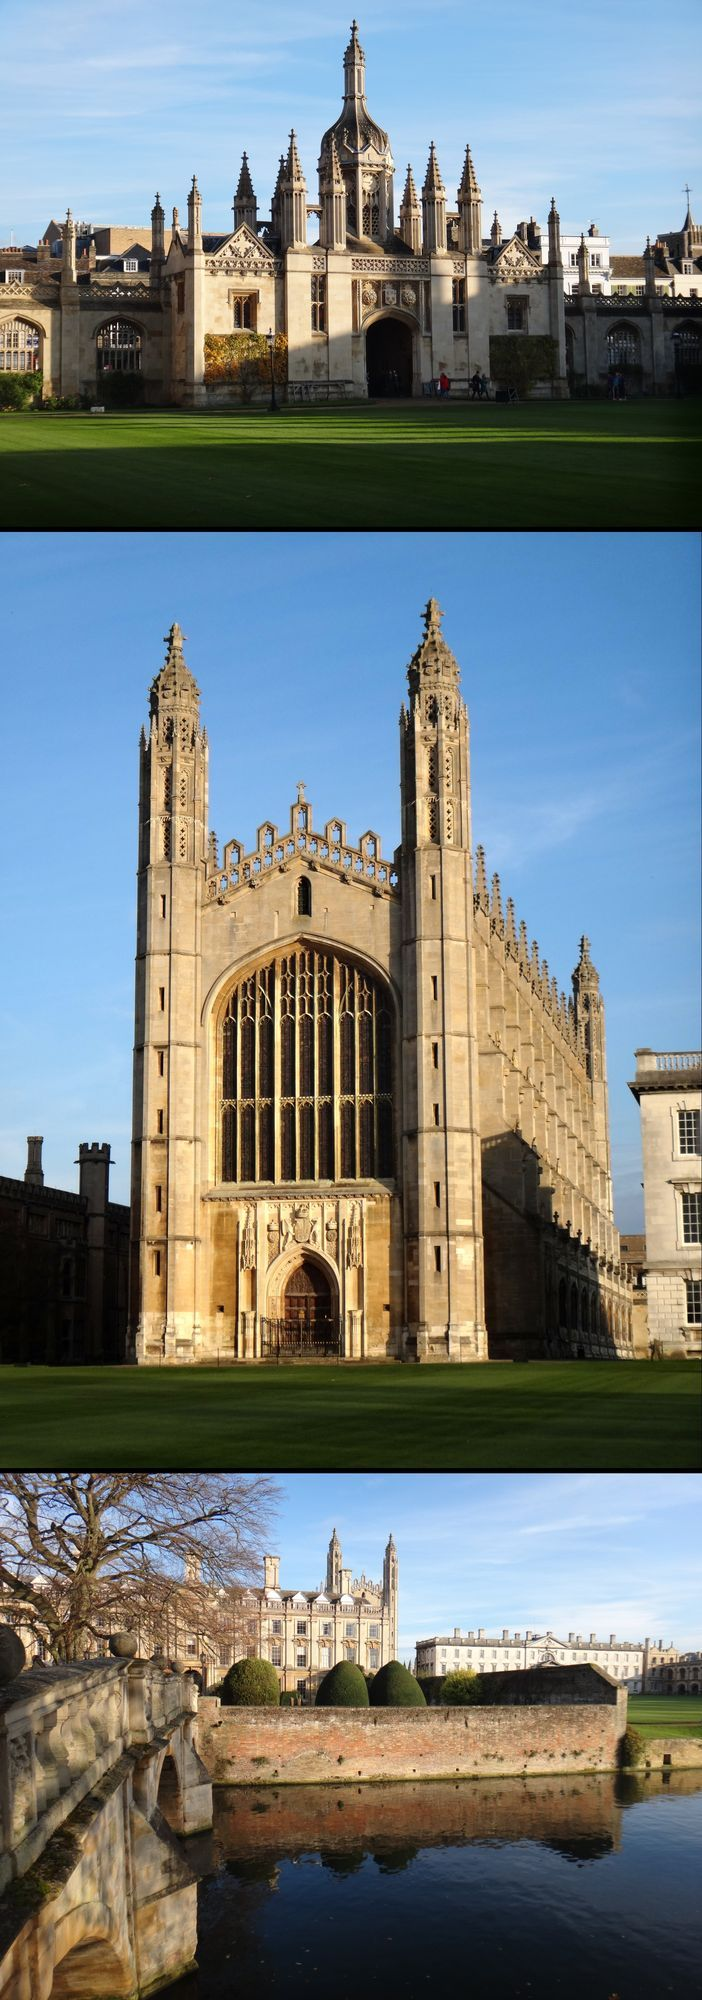 King's College, Cambridge, England, UK